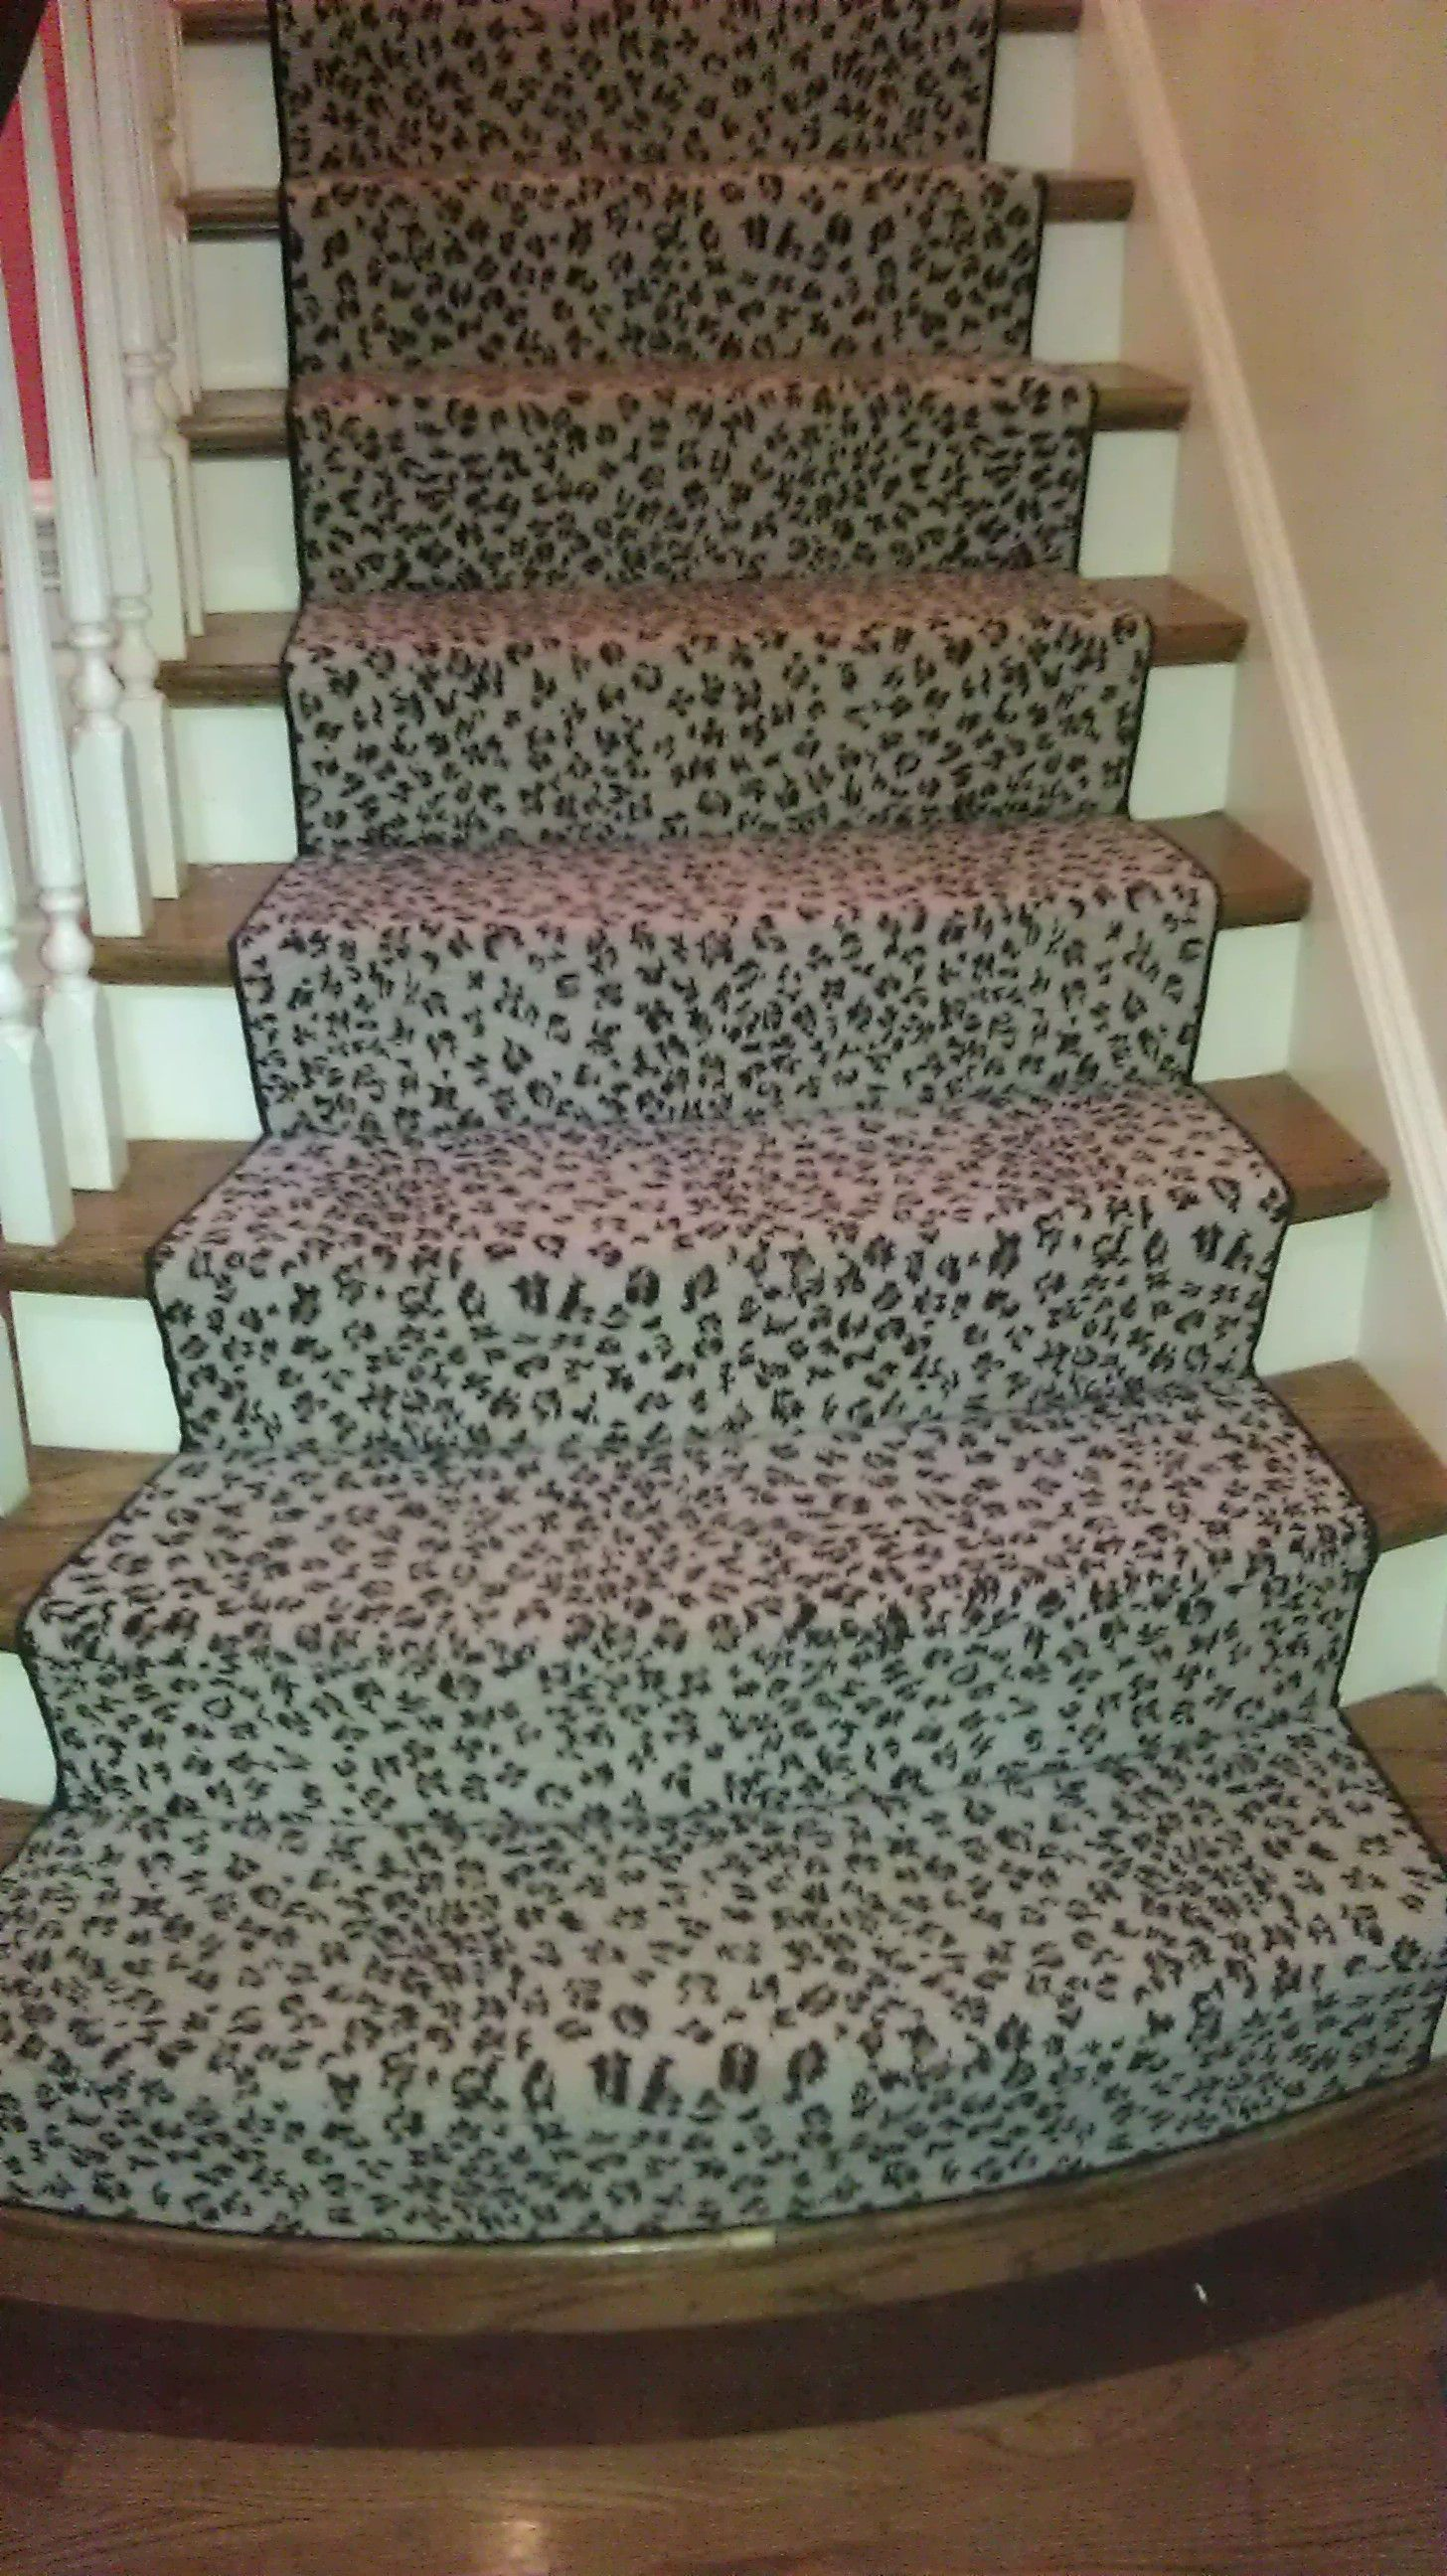 Wool Woven Wilton Carpet The Bottom Step Hand Sewed To Fit   Rug For Bottom Of Stairs   Stairs Floormat   Stair Runners   Flooring   Landing Mat   Rectangle